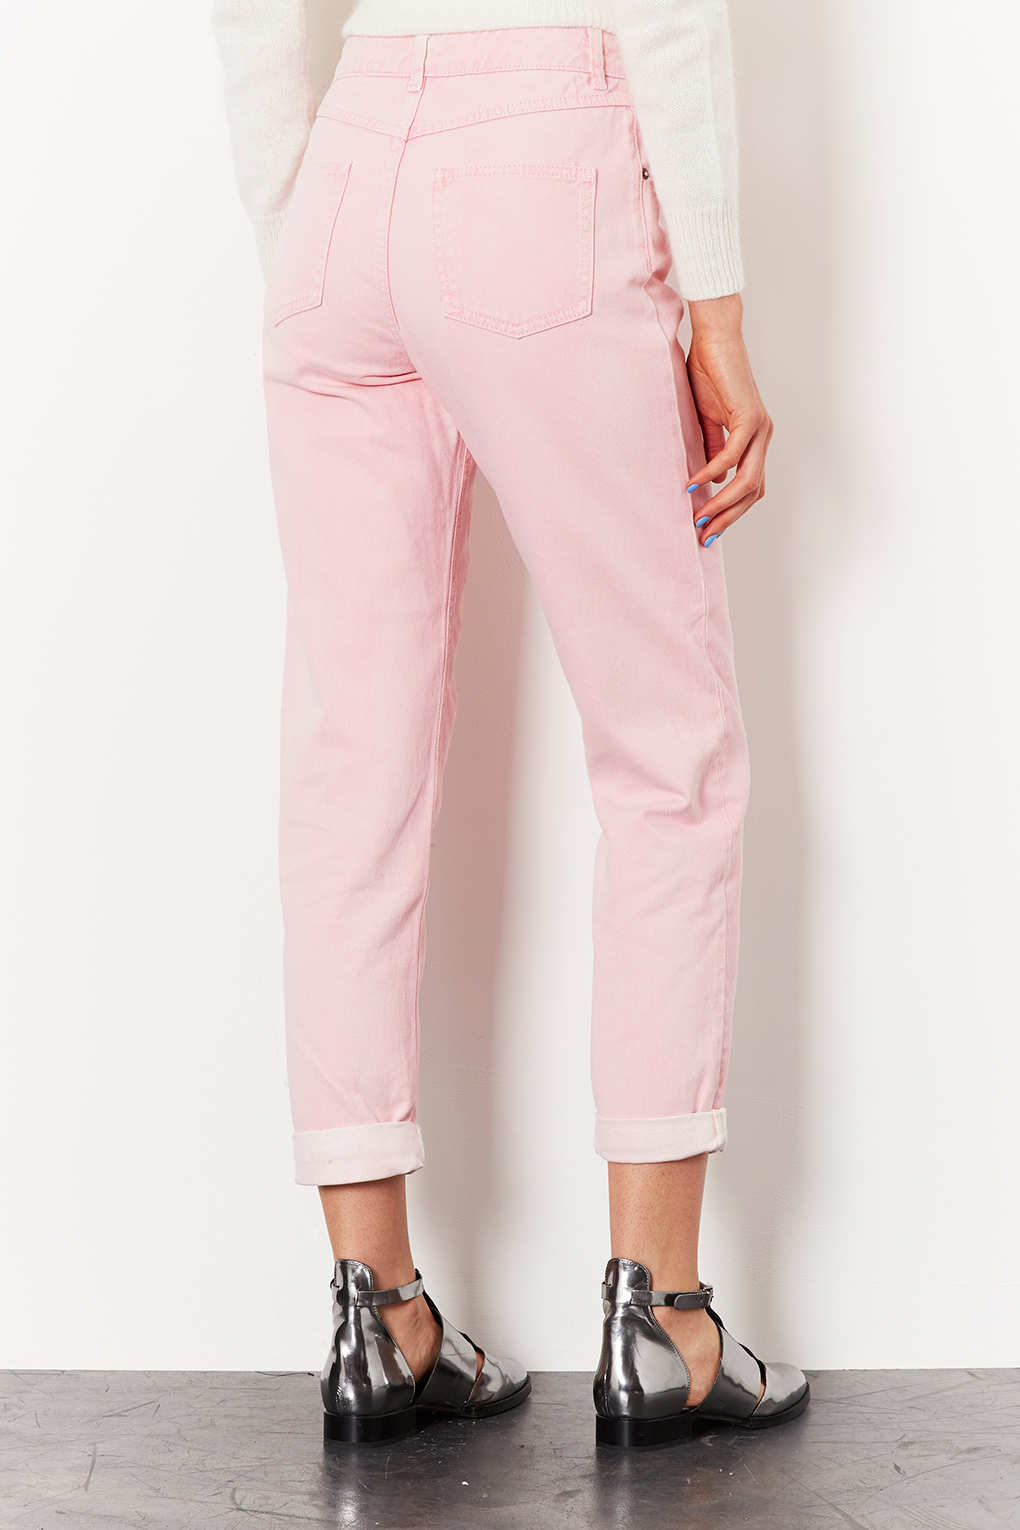 Lyst Topshop Moto Pink High Waisted Mom Jeans In Pink